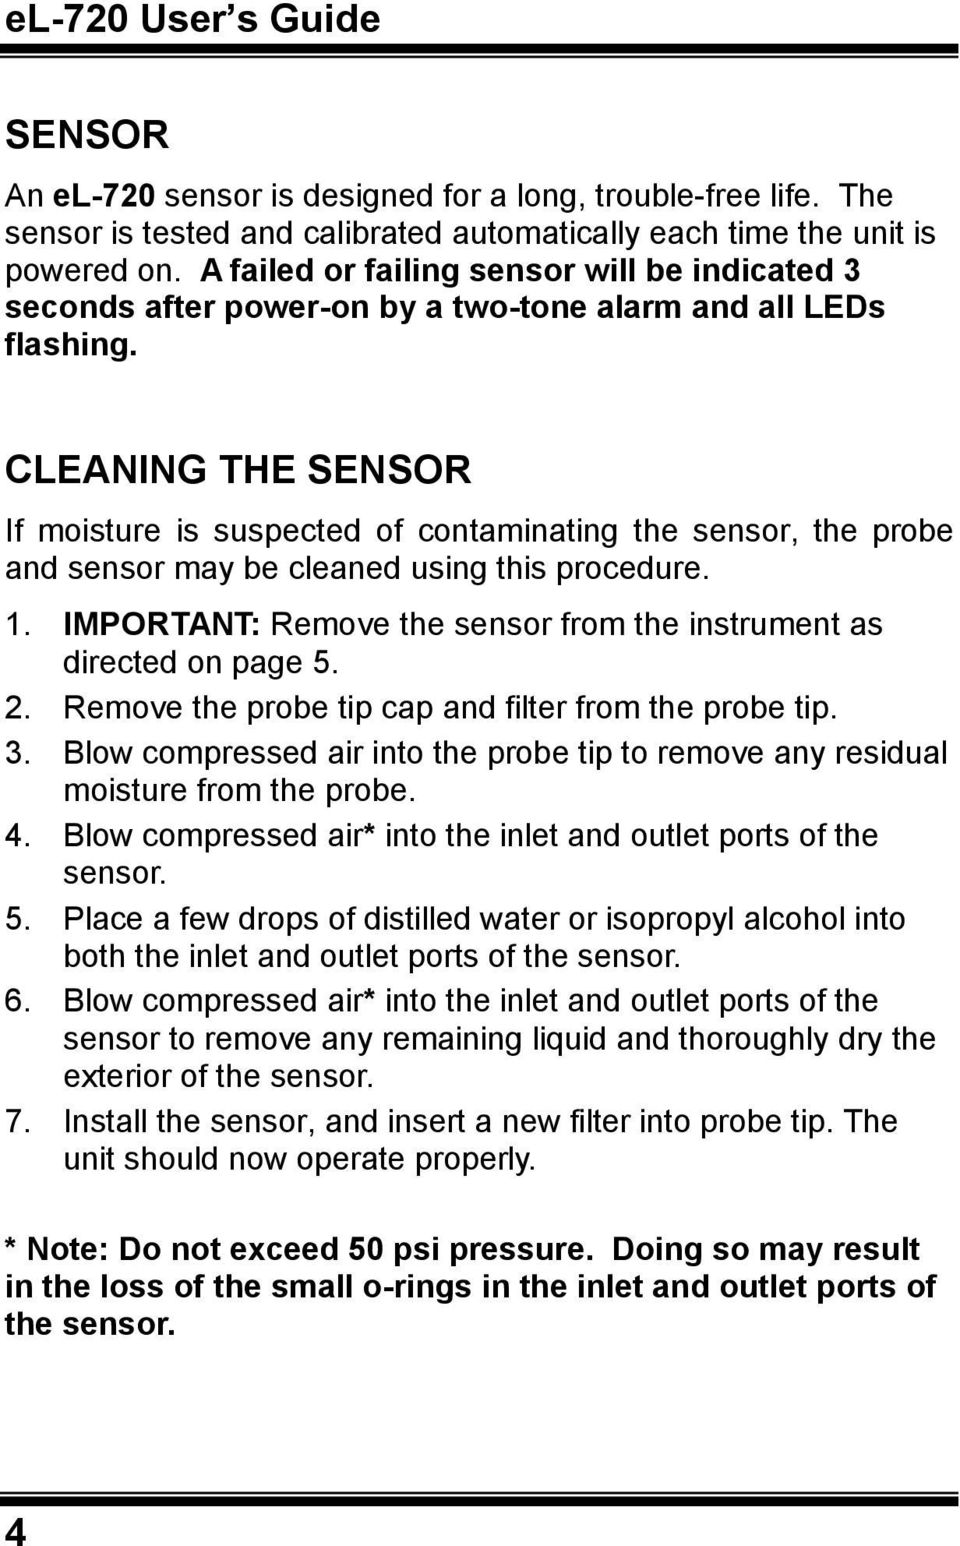 CLEANING THE SENSOR If moisture is suspected of contaminating the sensor, the probe and sensor may be cleaned using this procedure. 1.